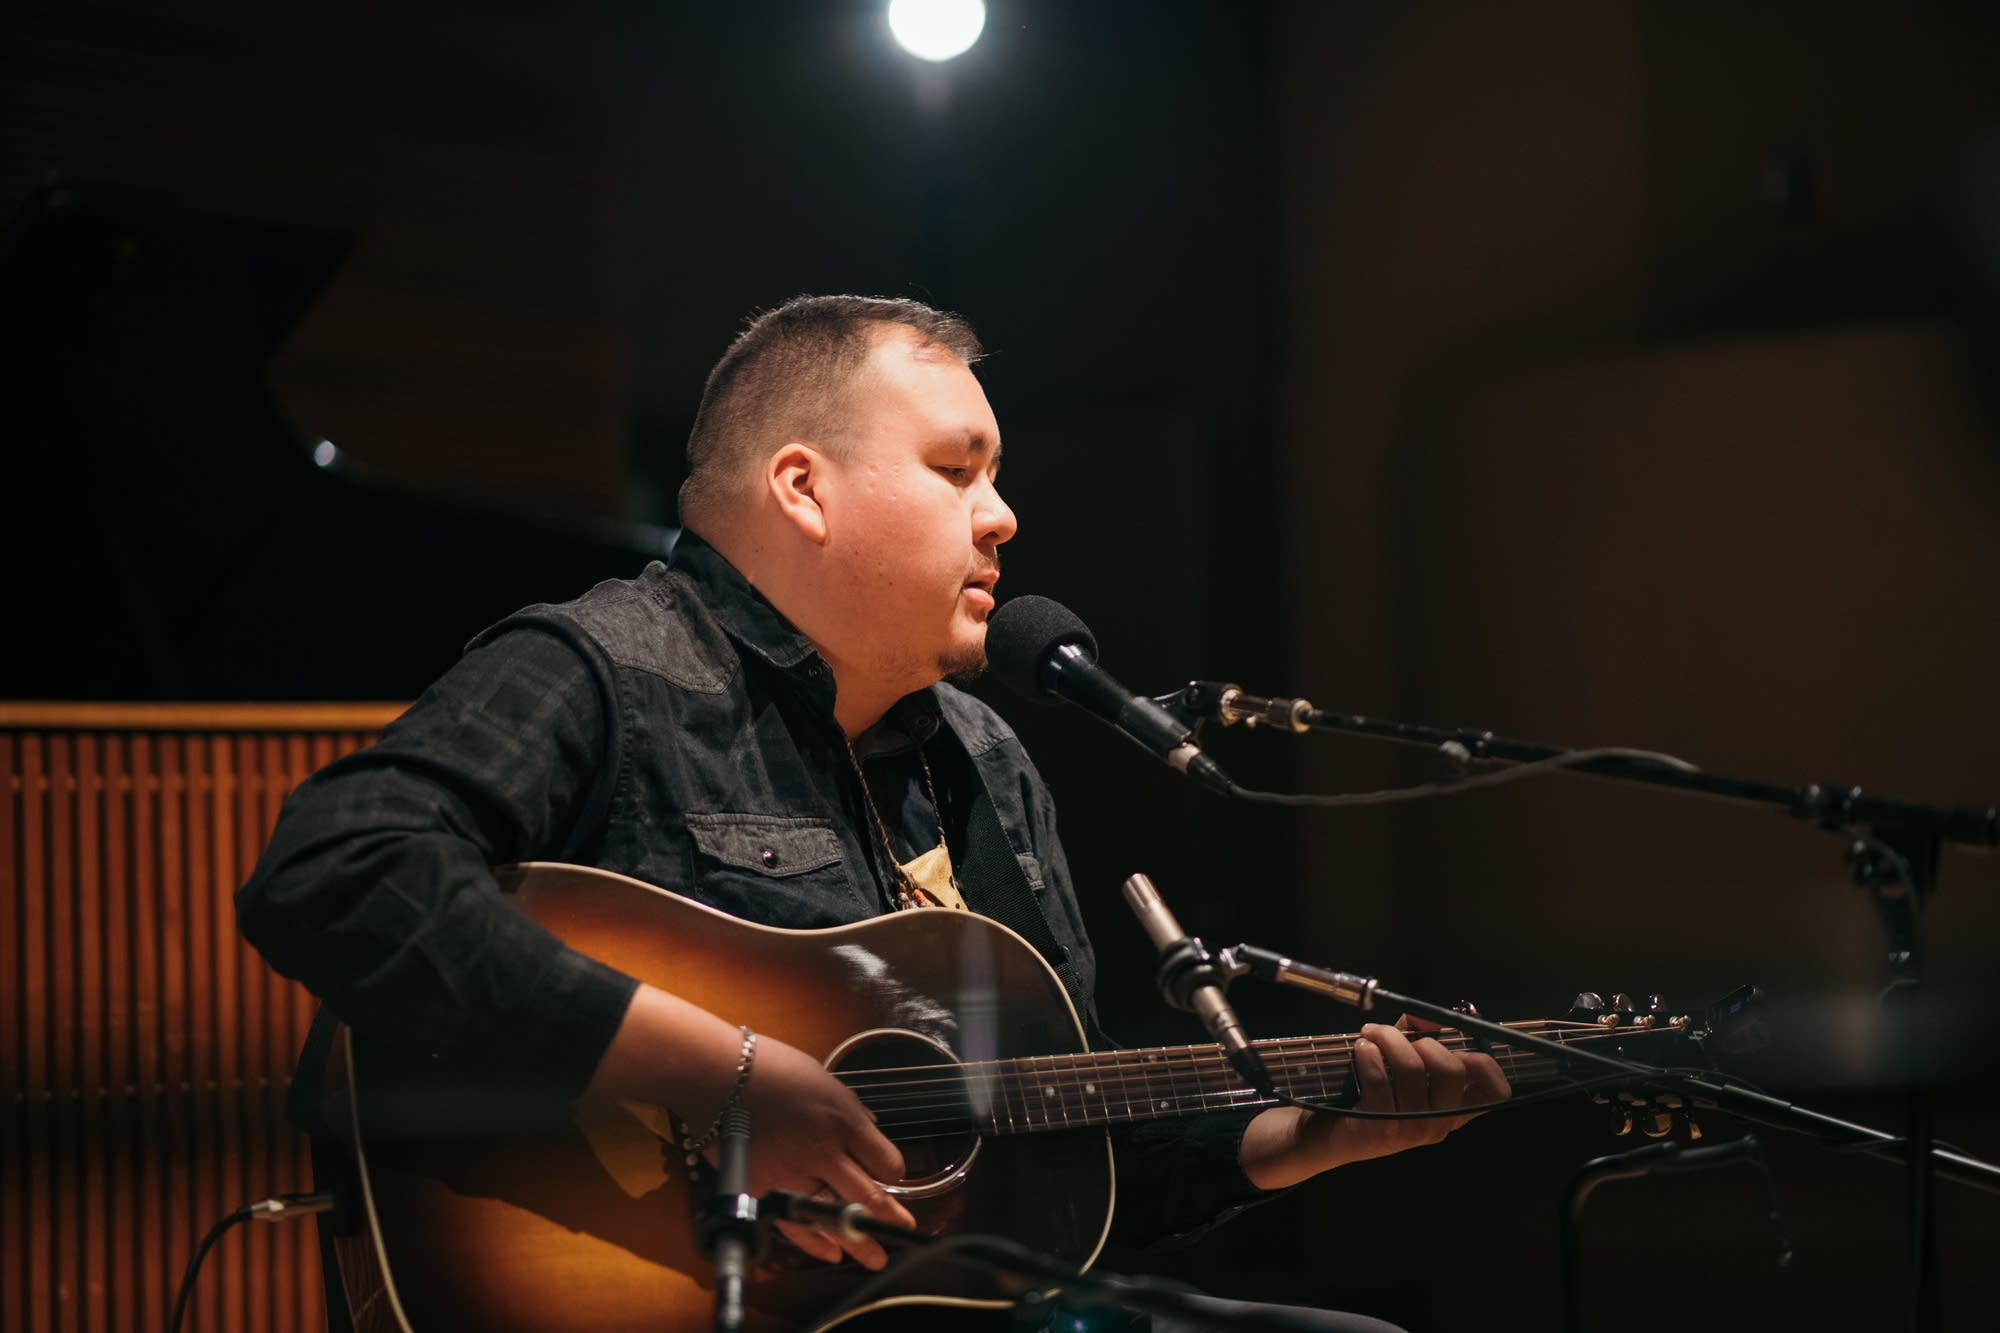 William Prince performs in The Current studio